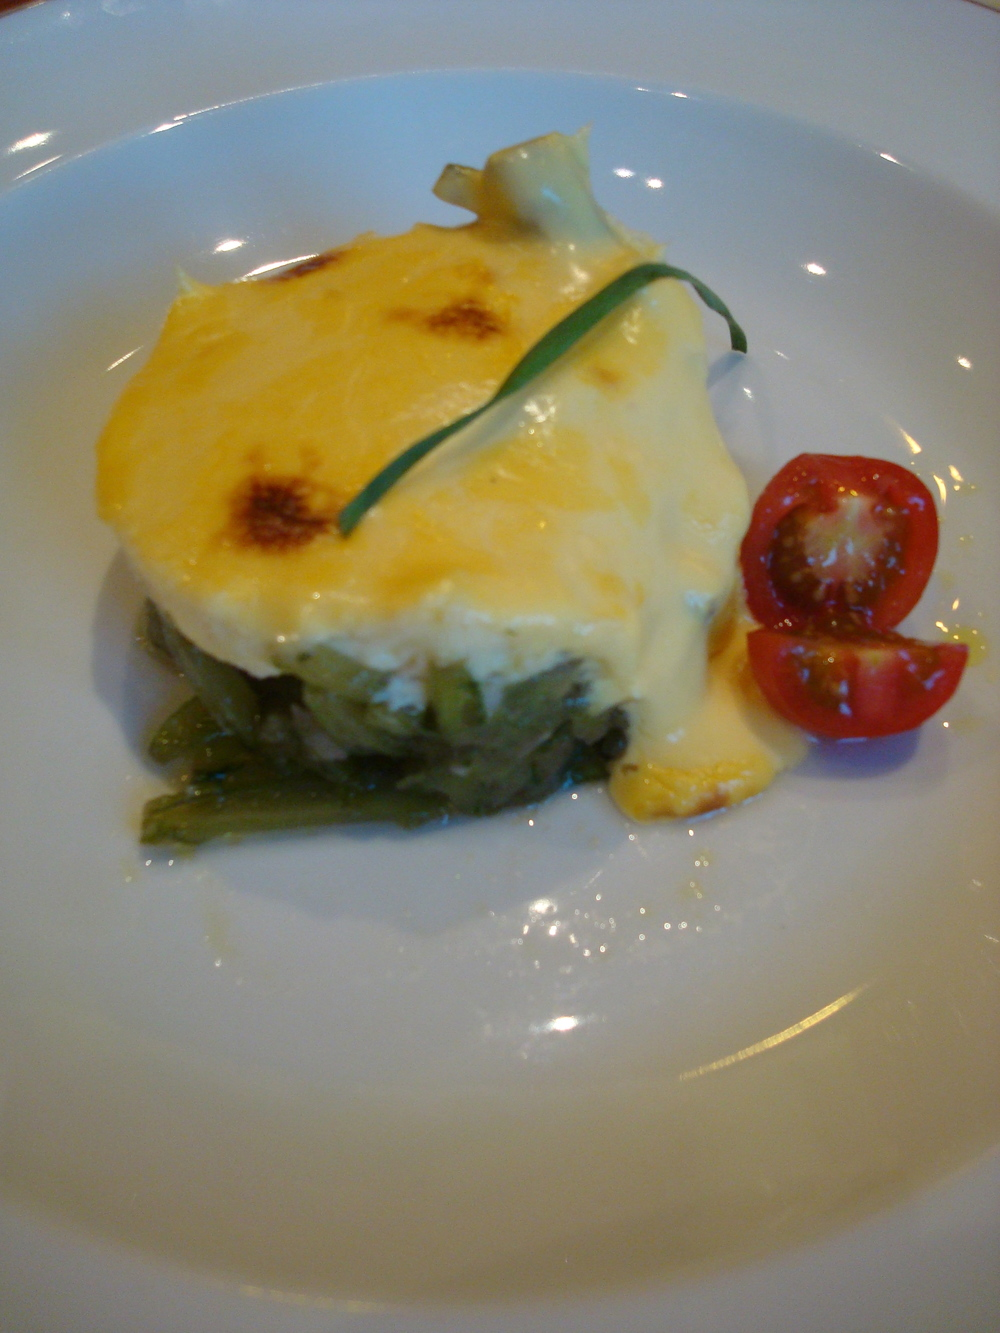 Cardo with cod and hollandaise. Cardo is a local vegetable with a celery-like texture that takes a little like mild asparagus